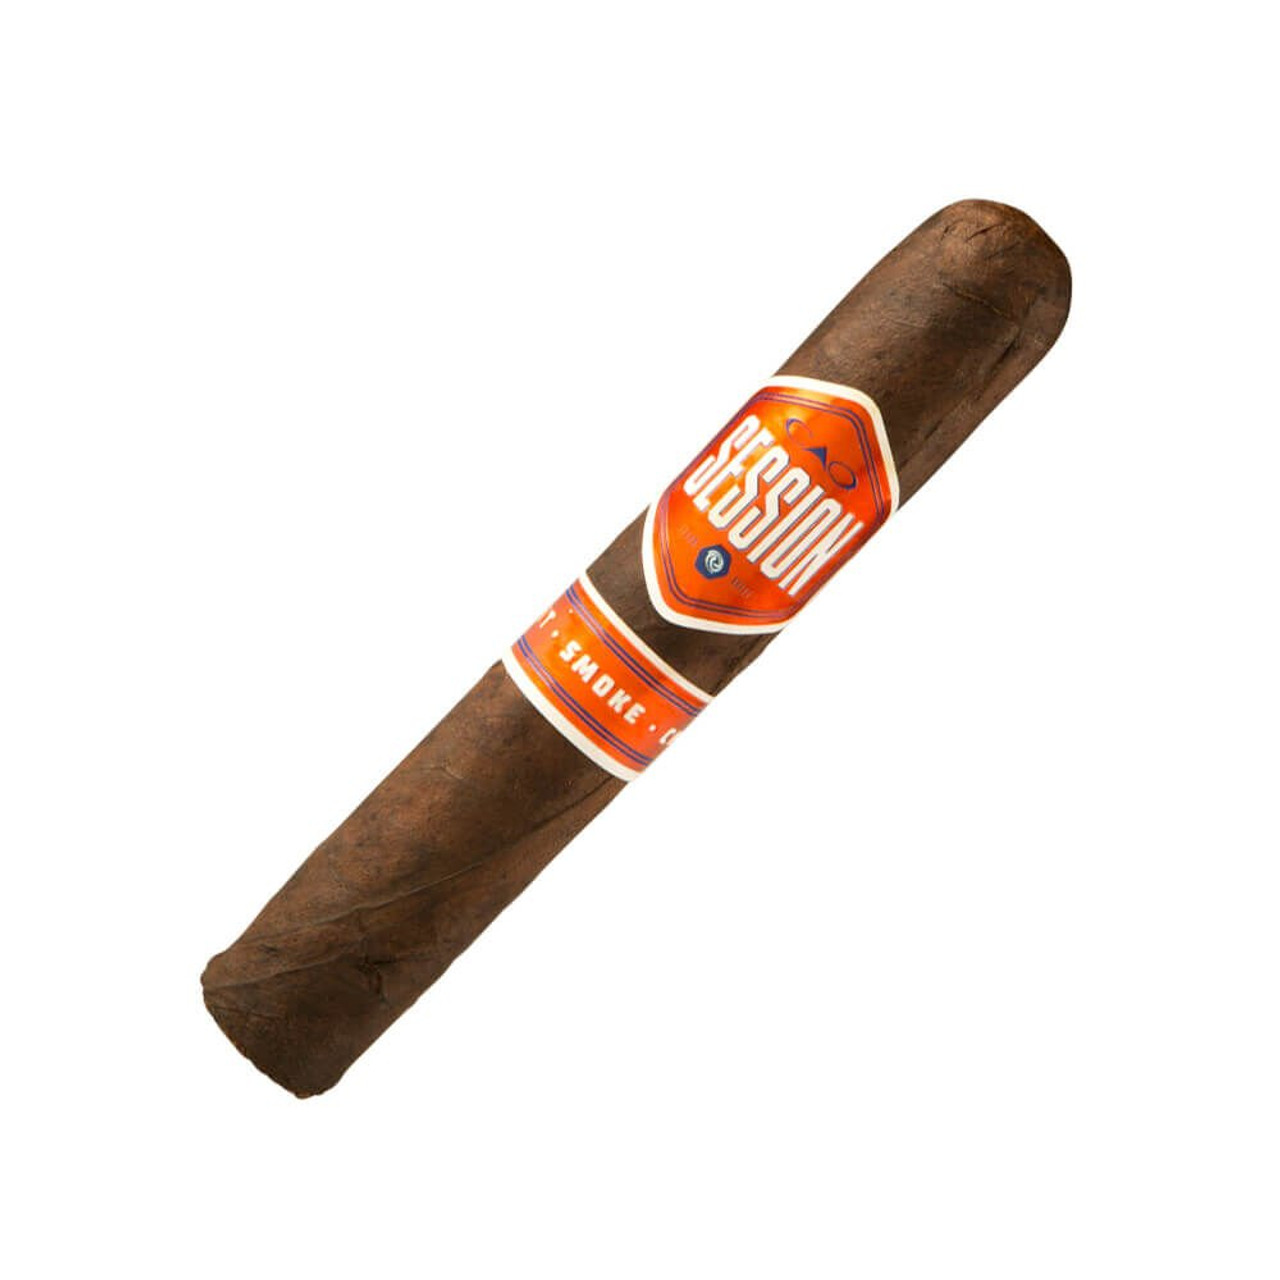 CAO Session Garage Cigars - 5.25 x 54 (Pack of 5)